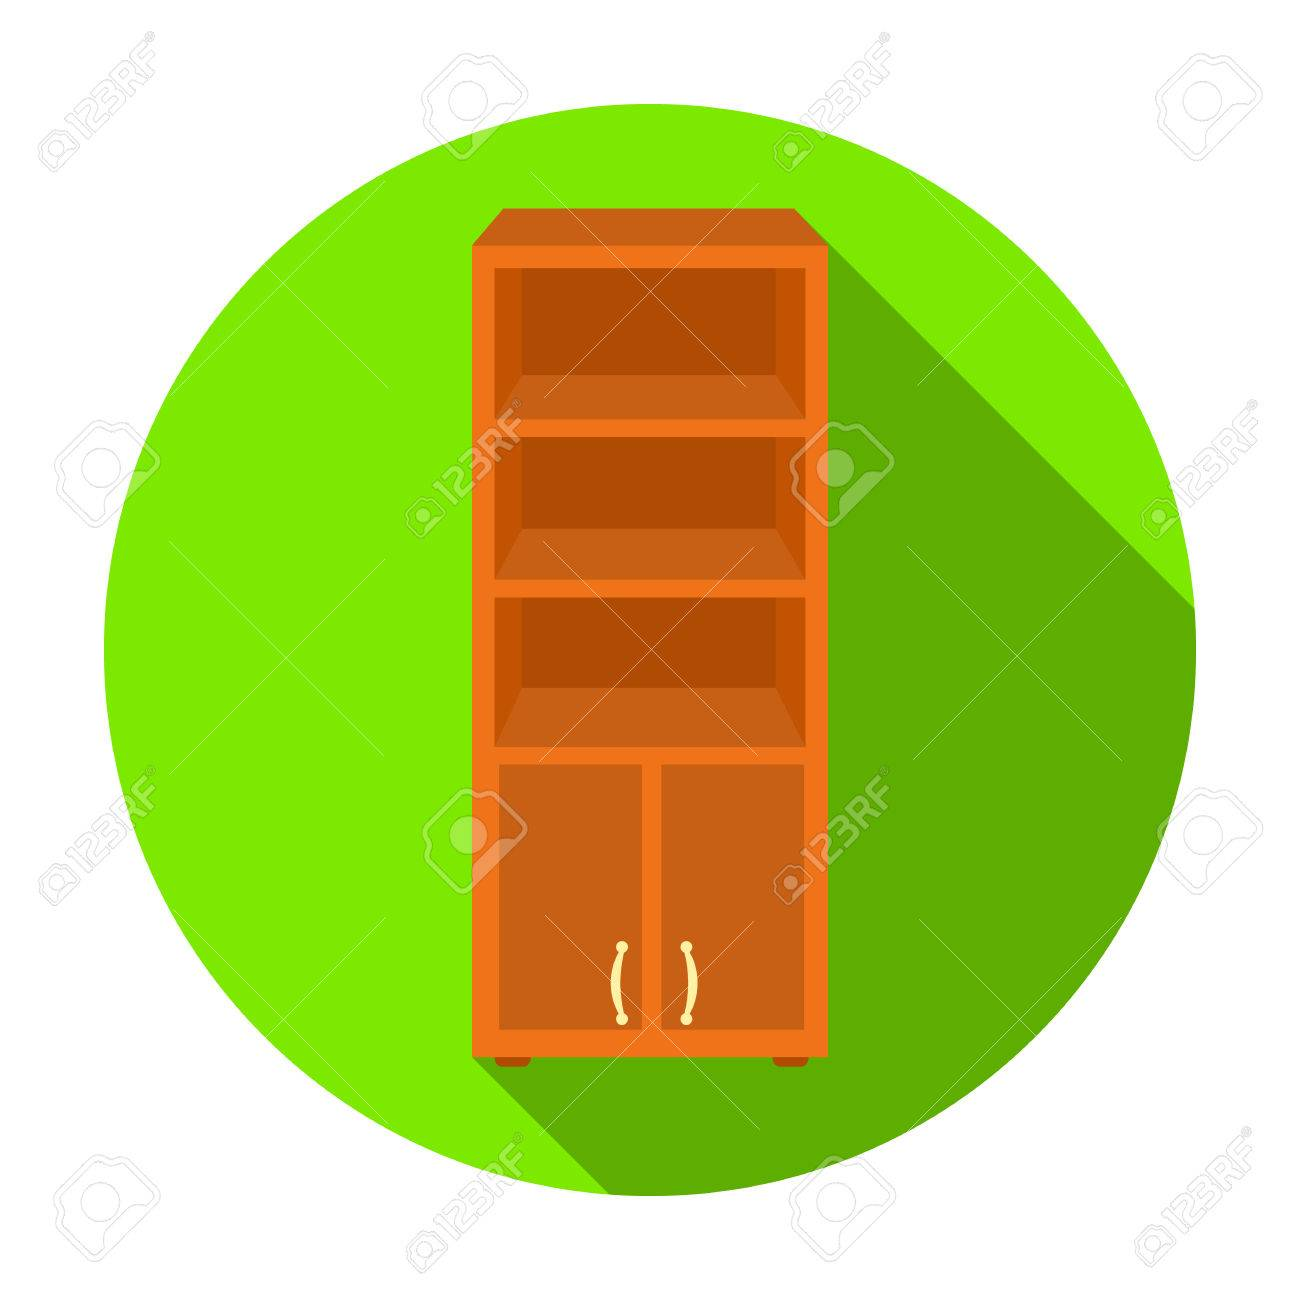 Office Bookcase Icon In Flat Style Isolated On White Background Furniture And Interior Symbol